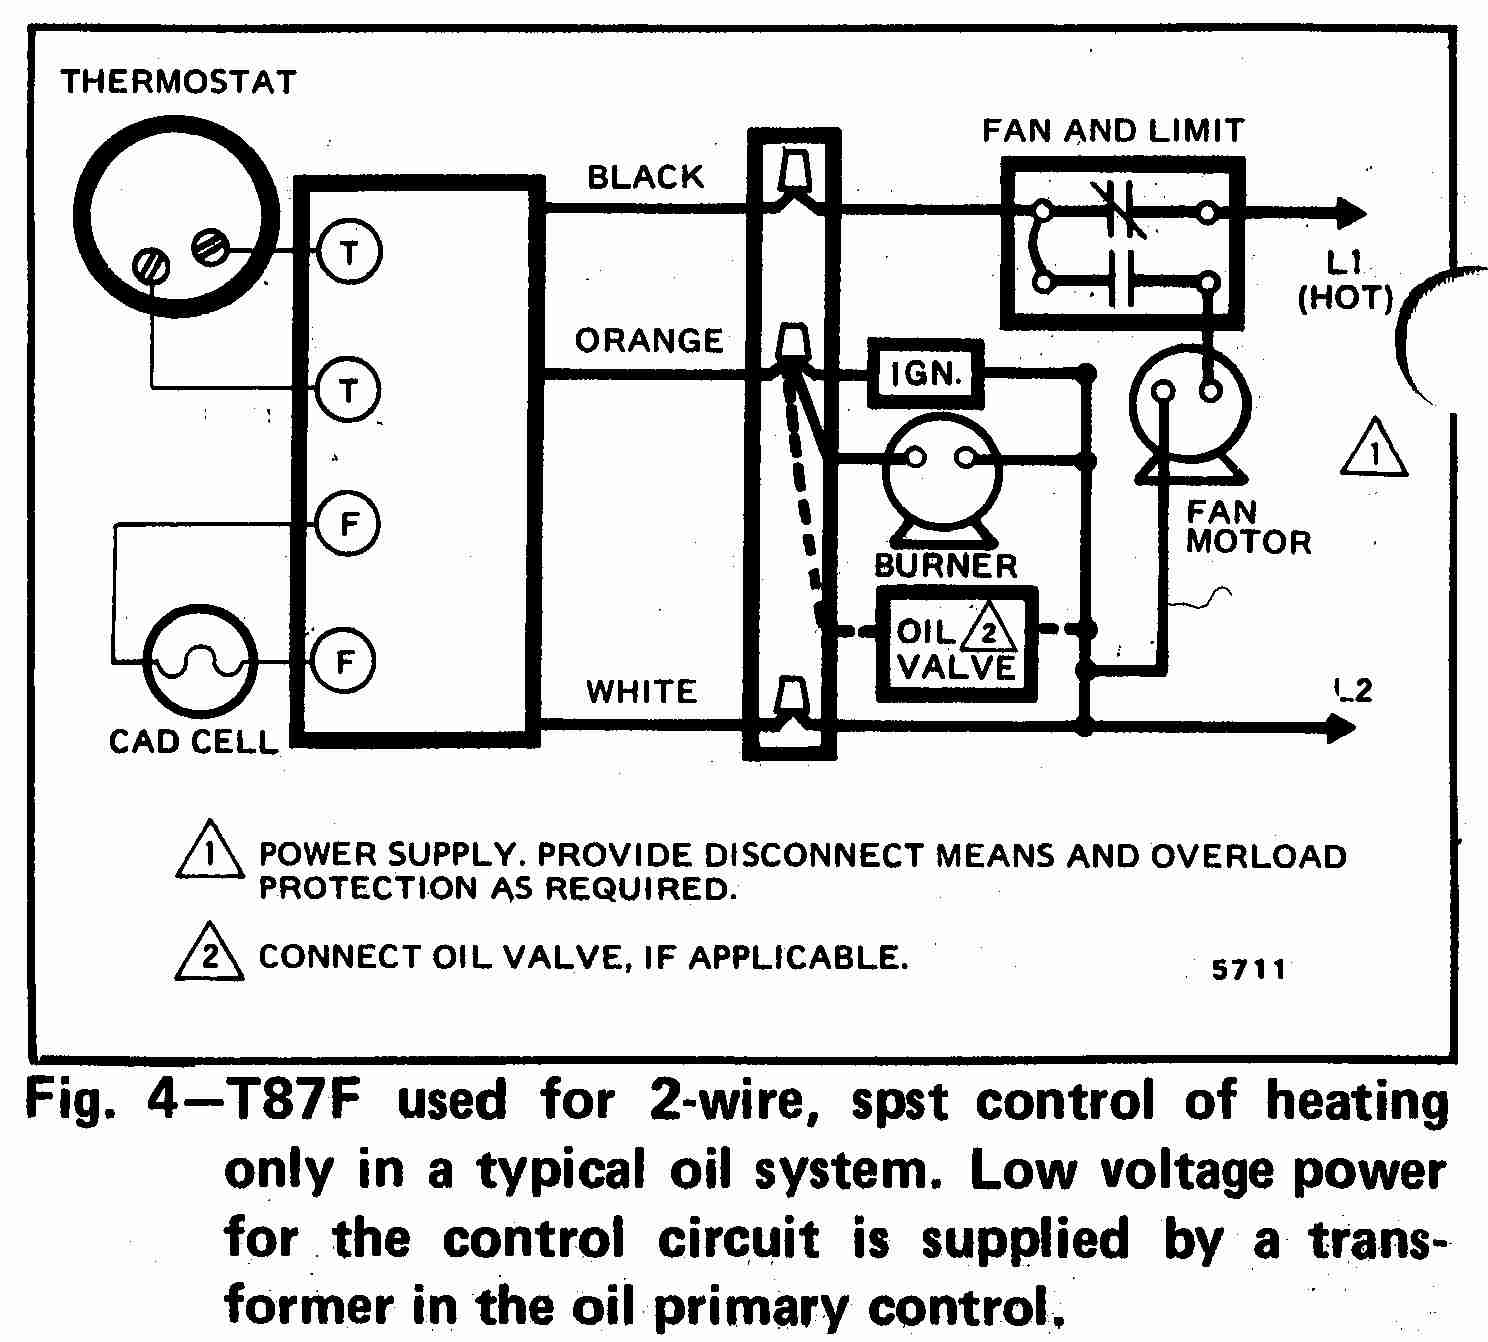 TT_T87F_0002_2W_DJF room thermostat wiring diagrams for hvac systems residential hvac wiring diagrams at soozxer.org